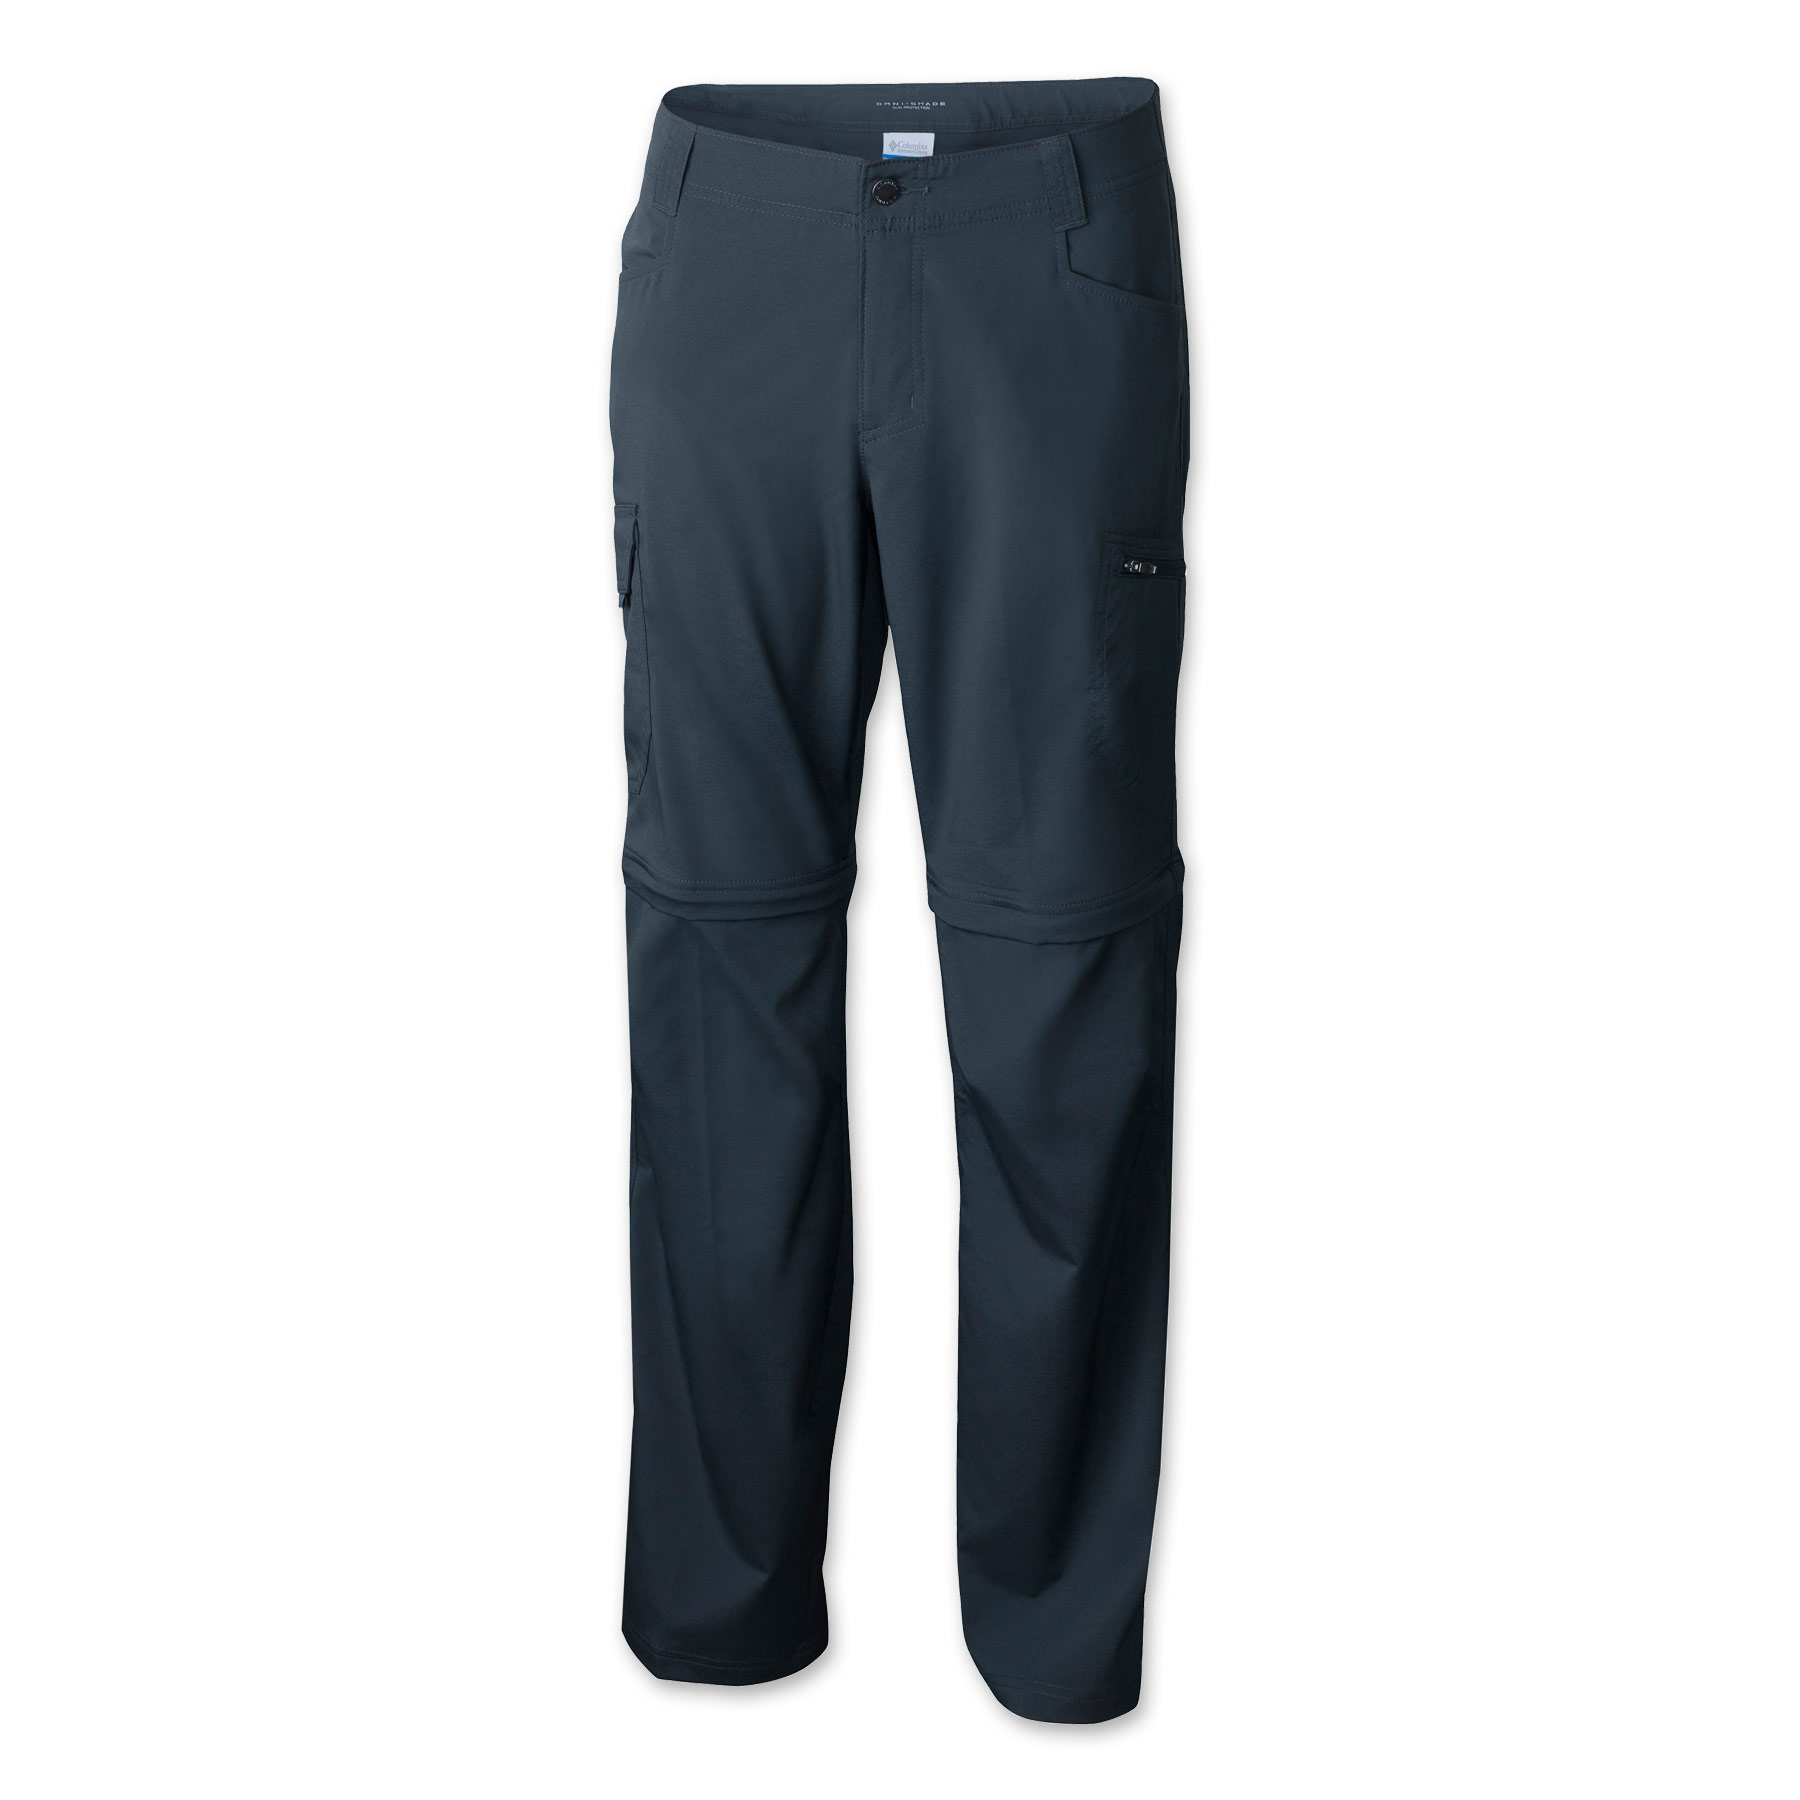 Men's Silver Ridge Stretch Convertible Pant